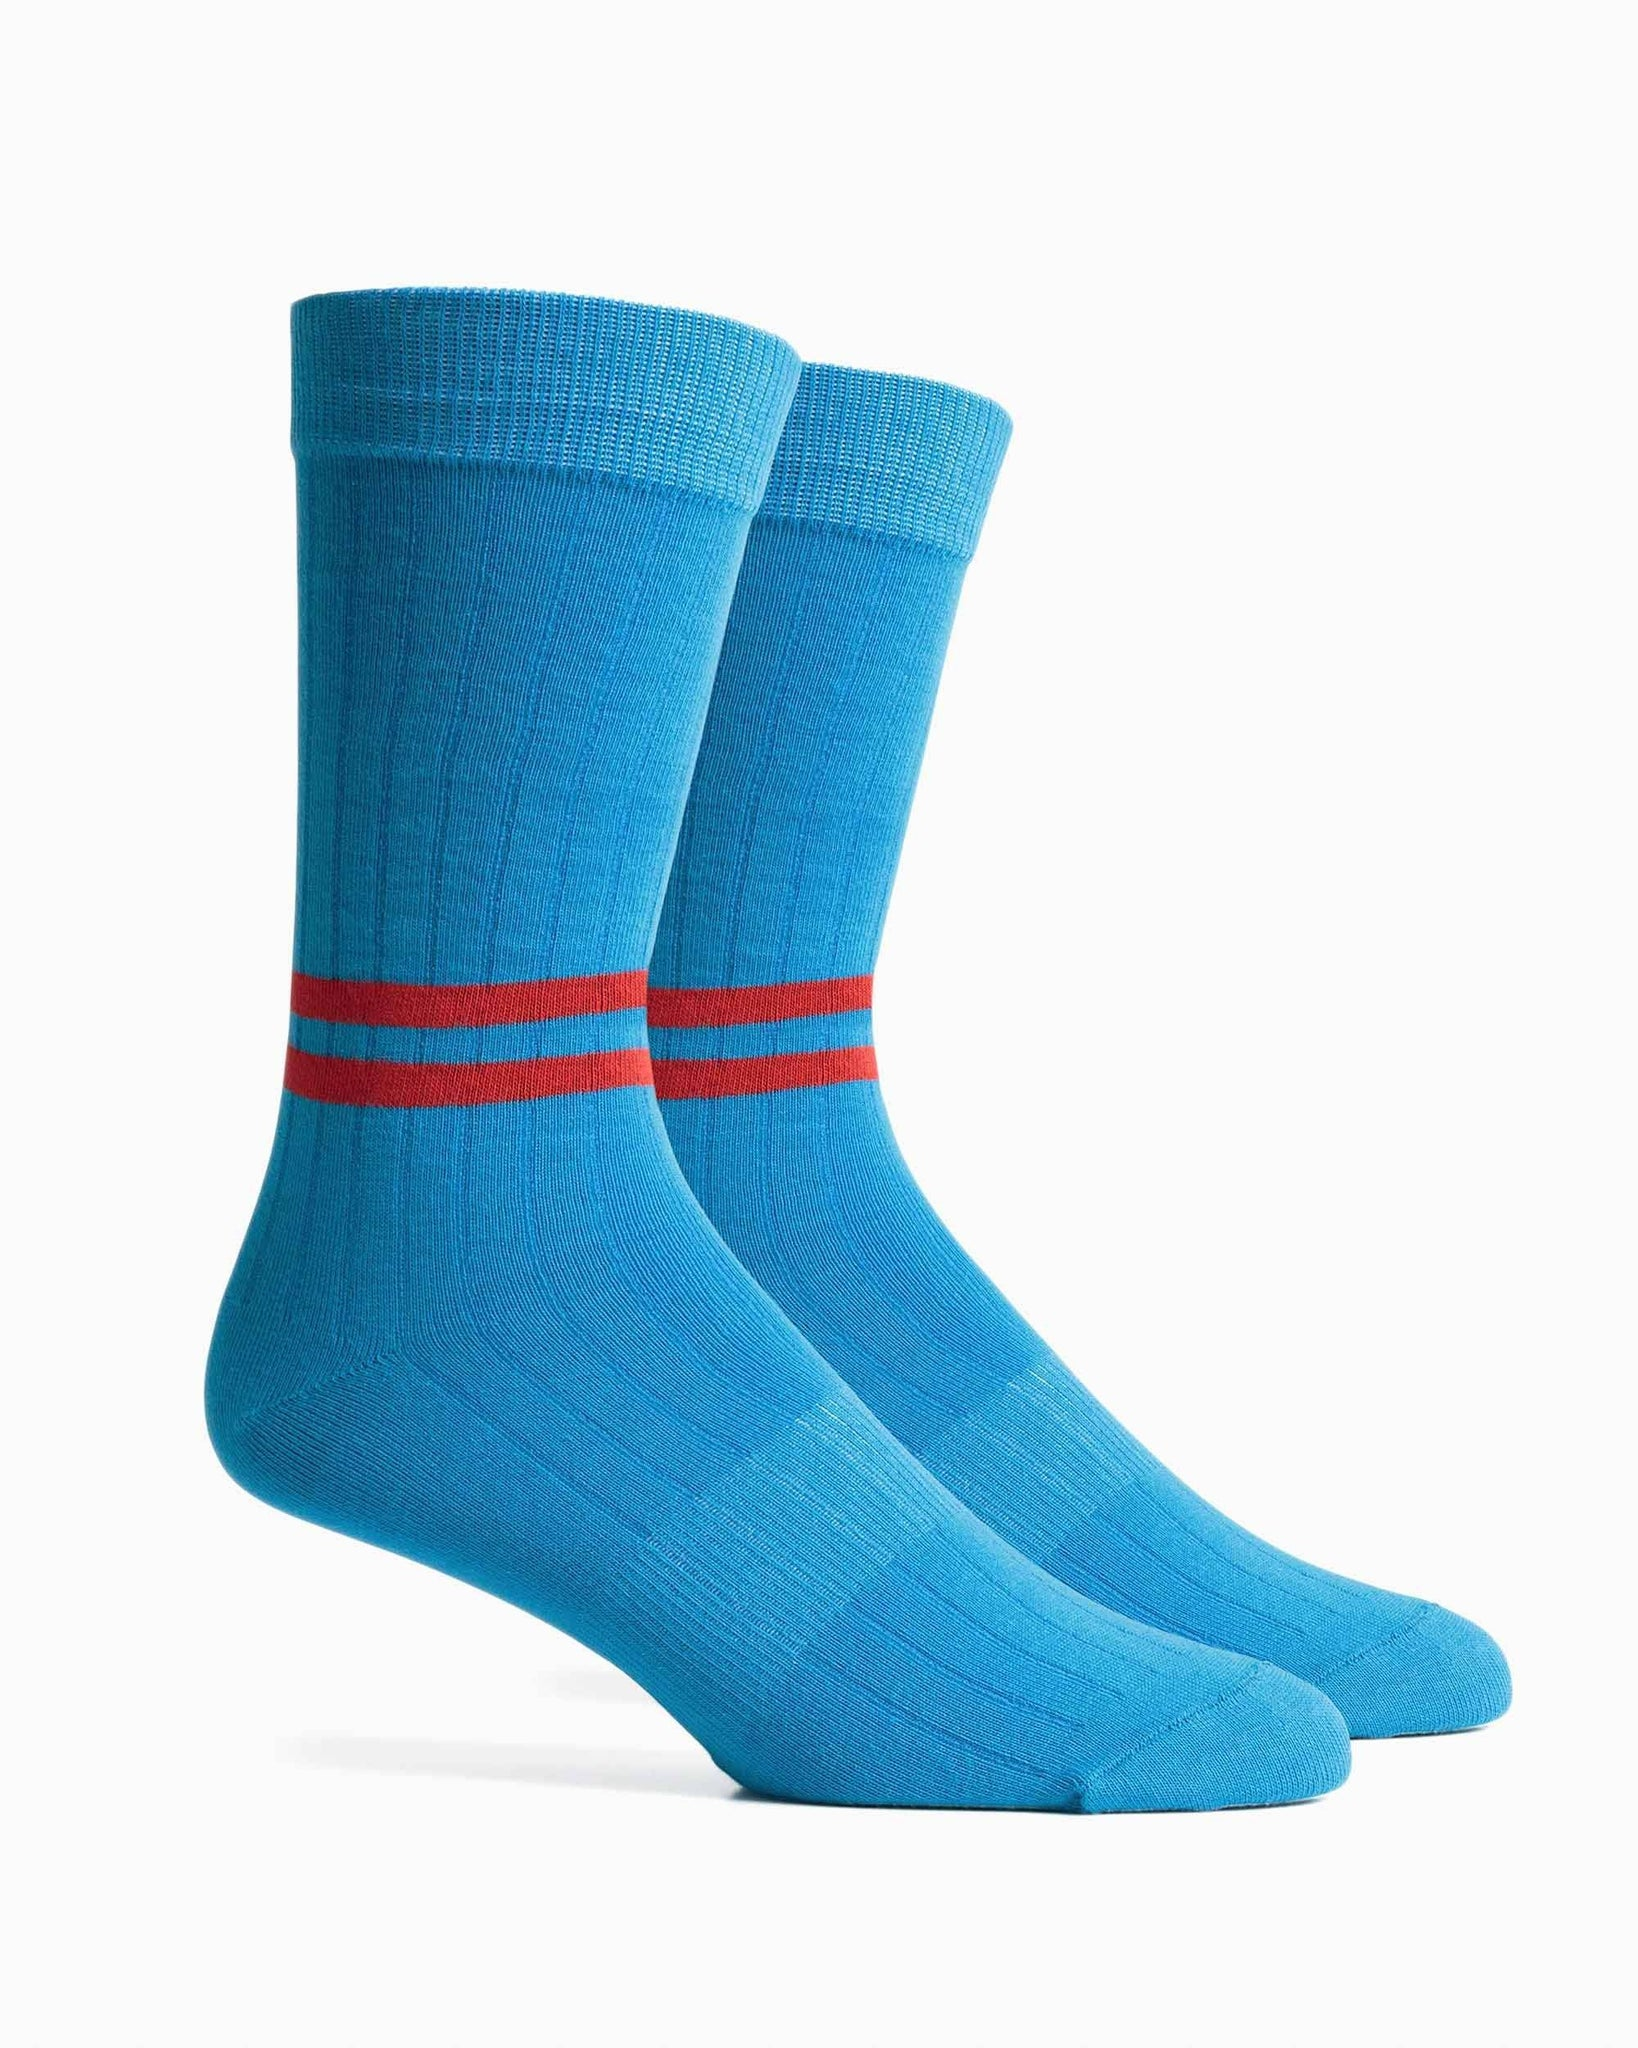 Richer Poorer Men's Bixby Socks